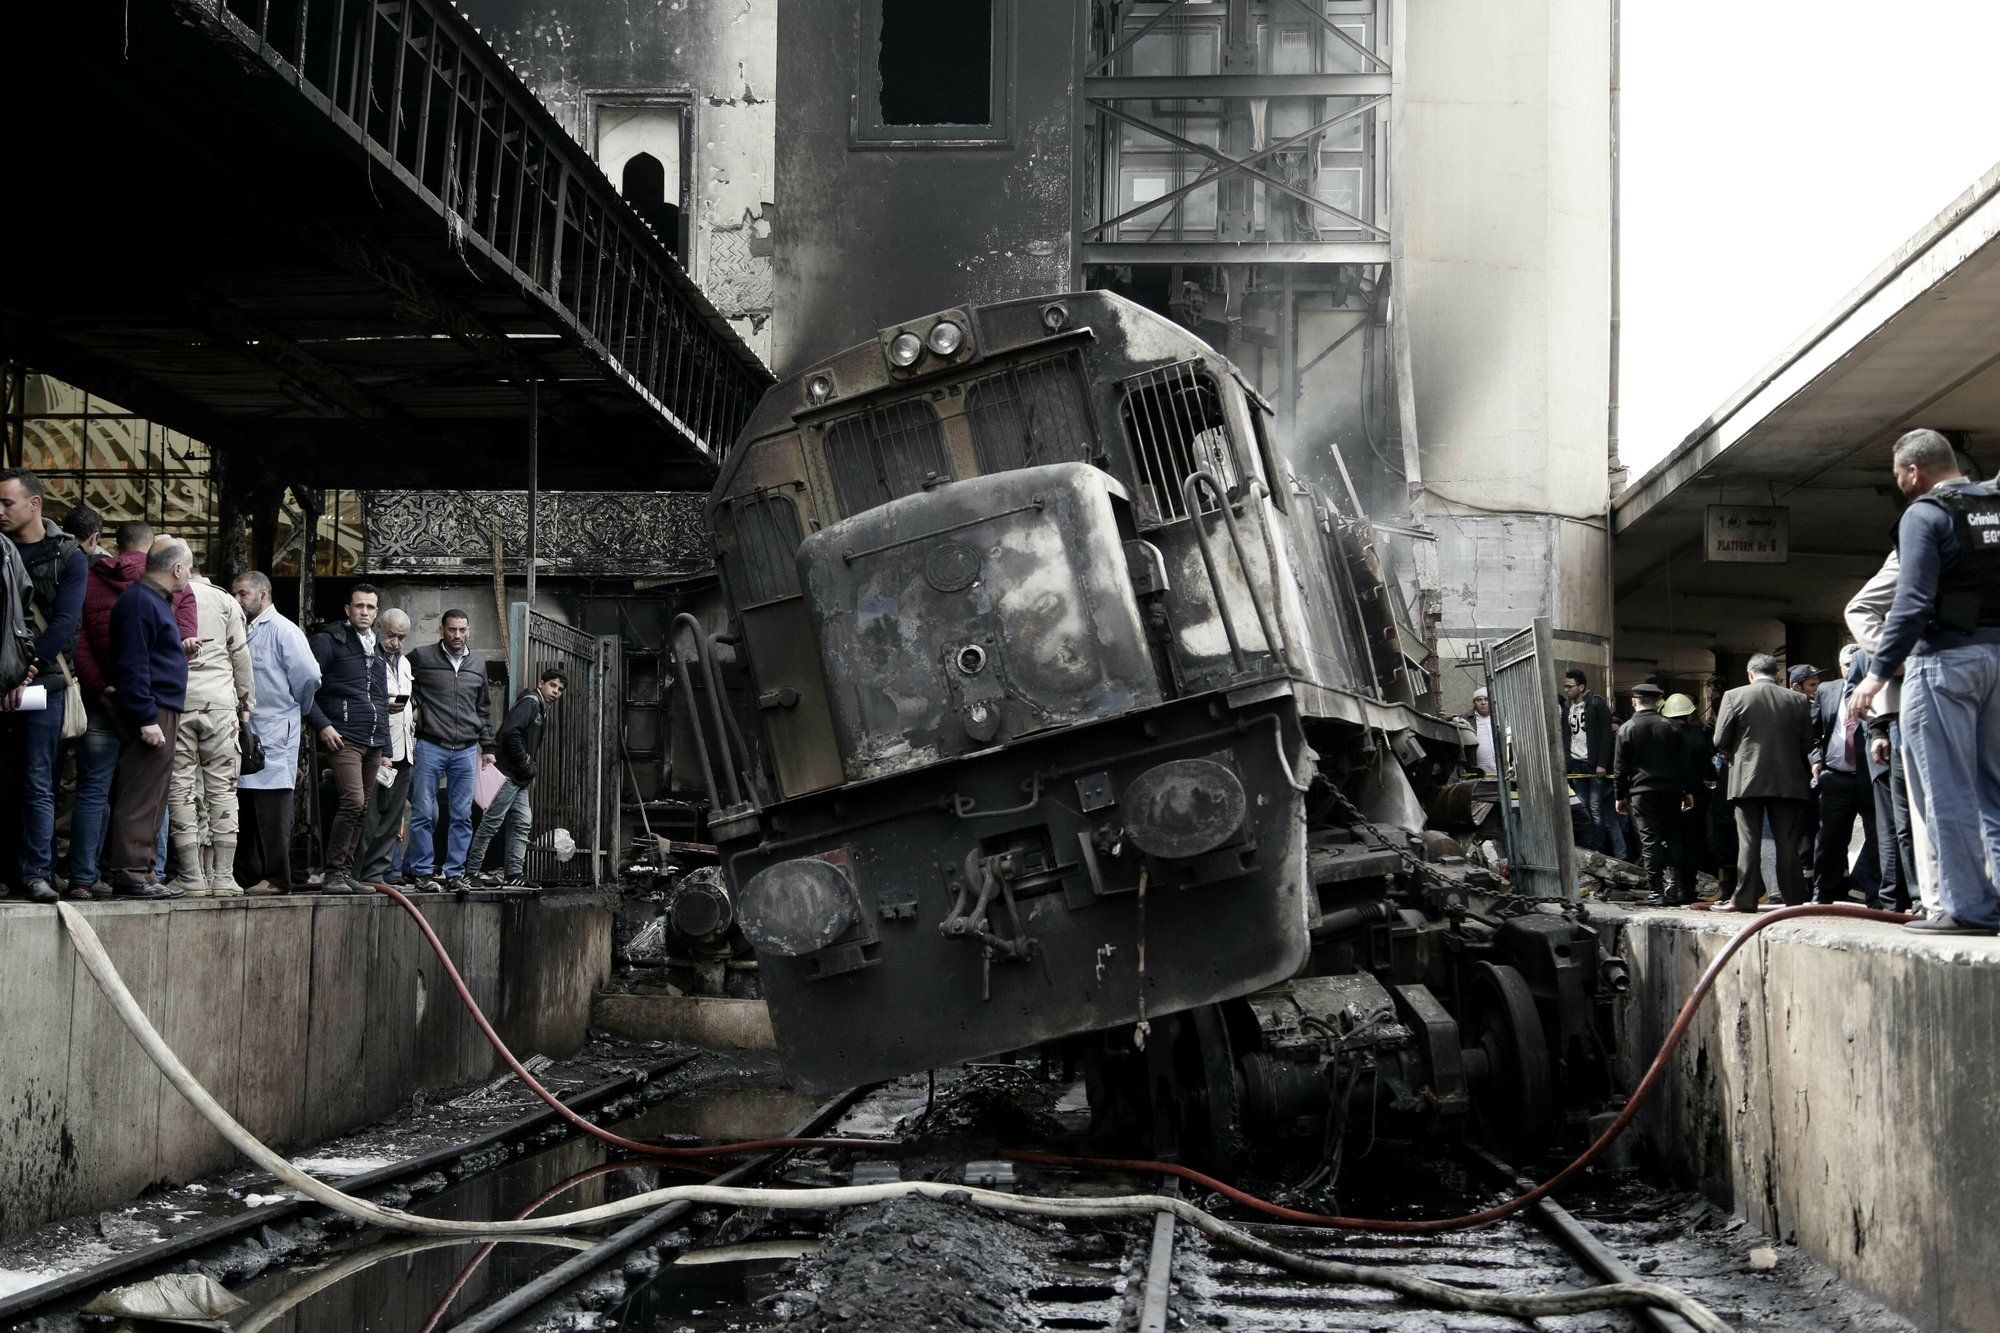 Image showing burnt out locomotive at Ramses station